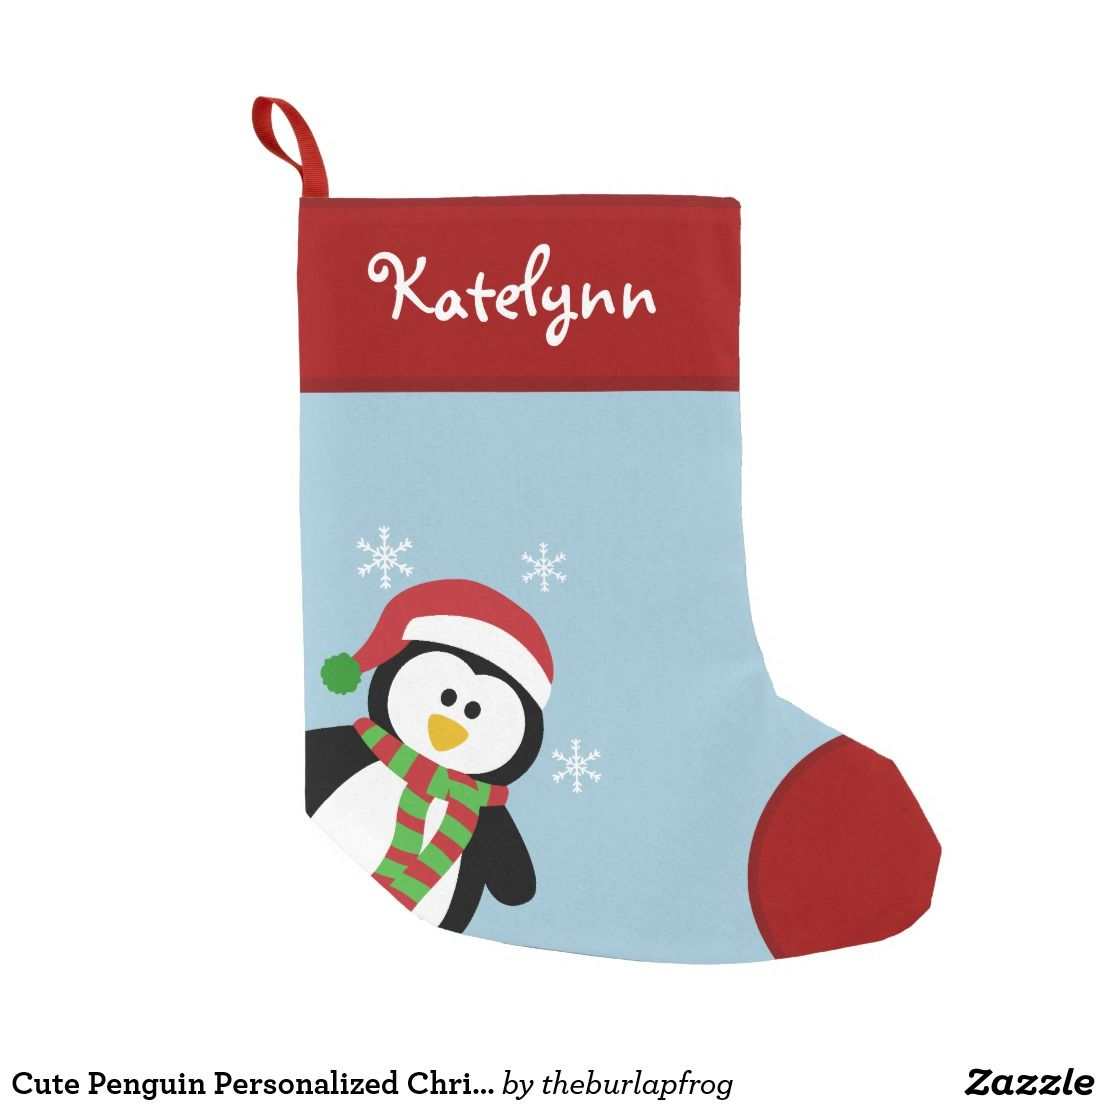 bcef914e2fe Cute Penguin Personalized Christmas Stocking Cute holiday penguin custom  Christmas stocking. Click the